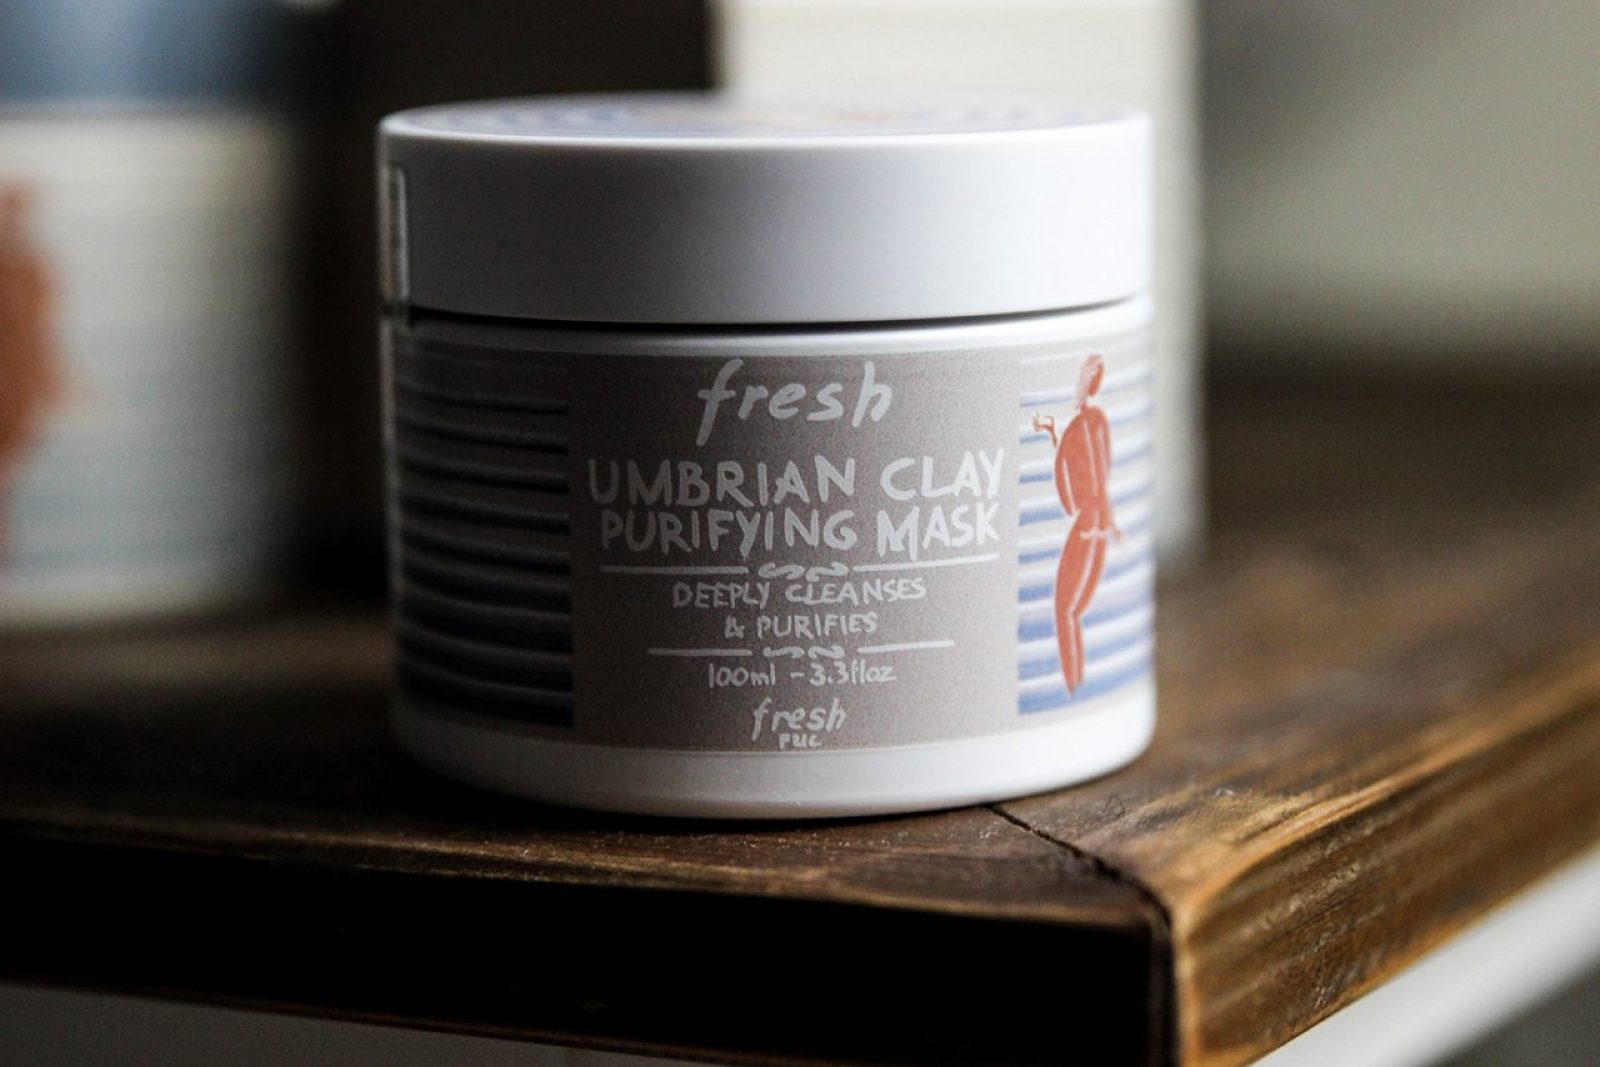 FRESH_Umbrian Clay_Purifying Mask_purifiant_18